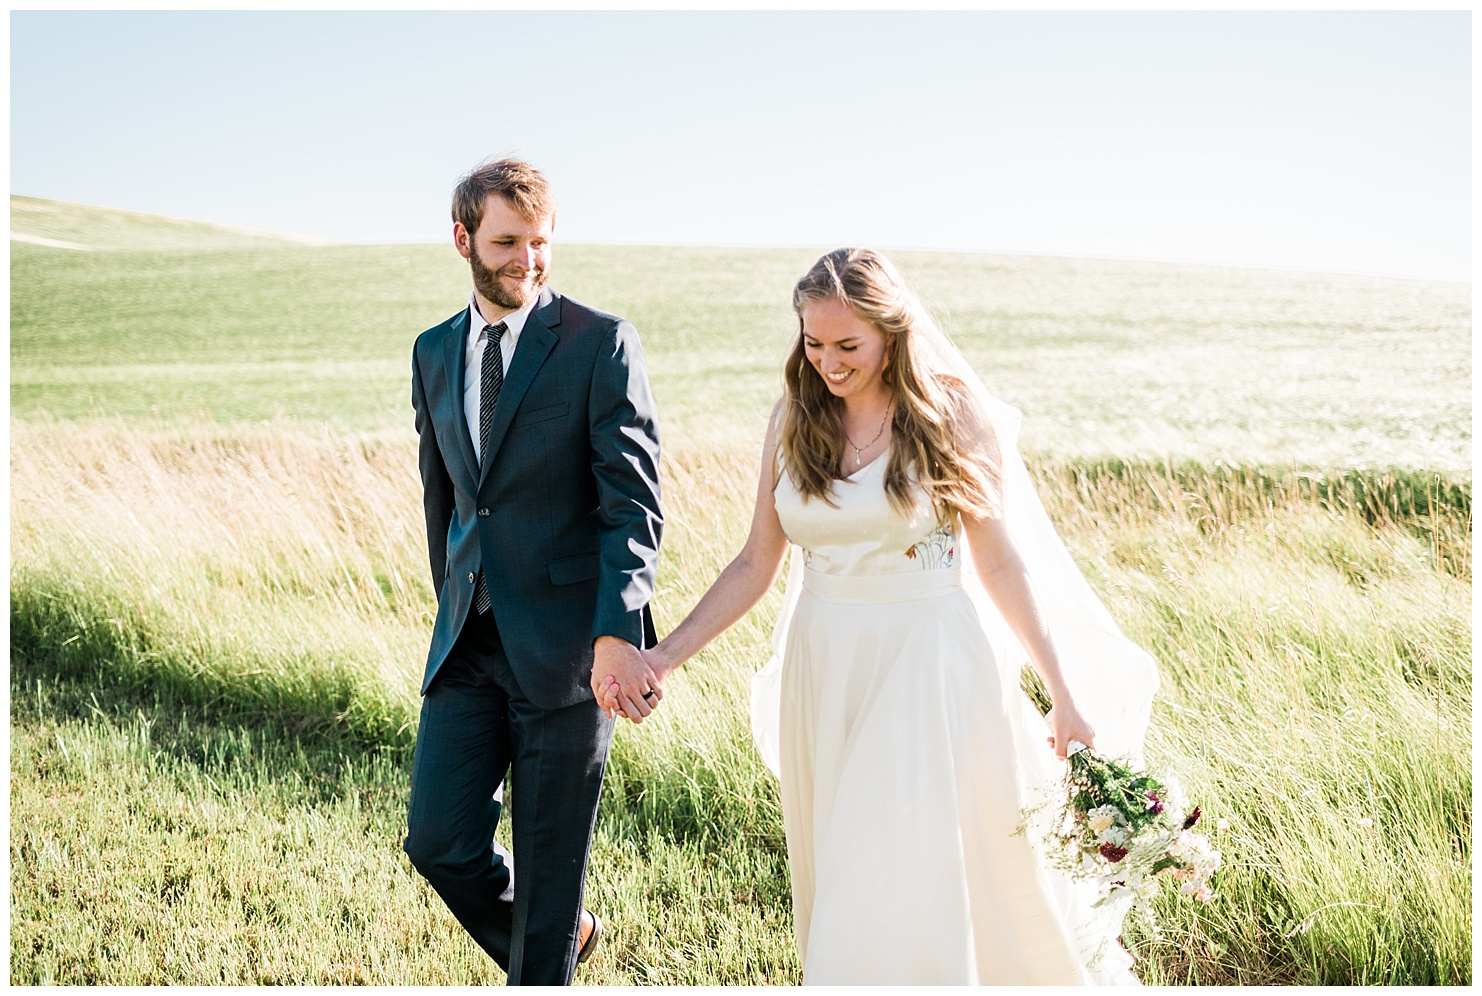 Photo of a Bride & Groom during their bridal session. Taken by Forthright Photo